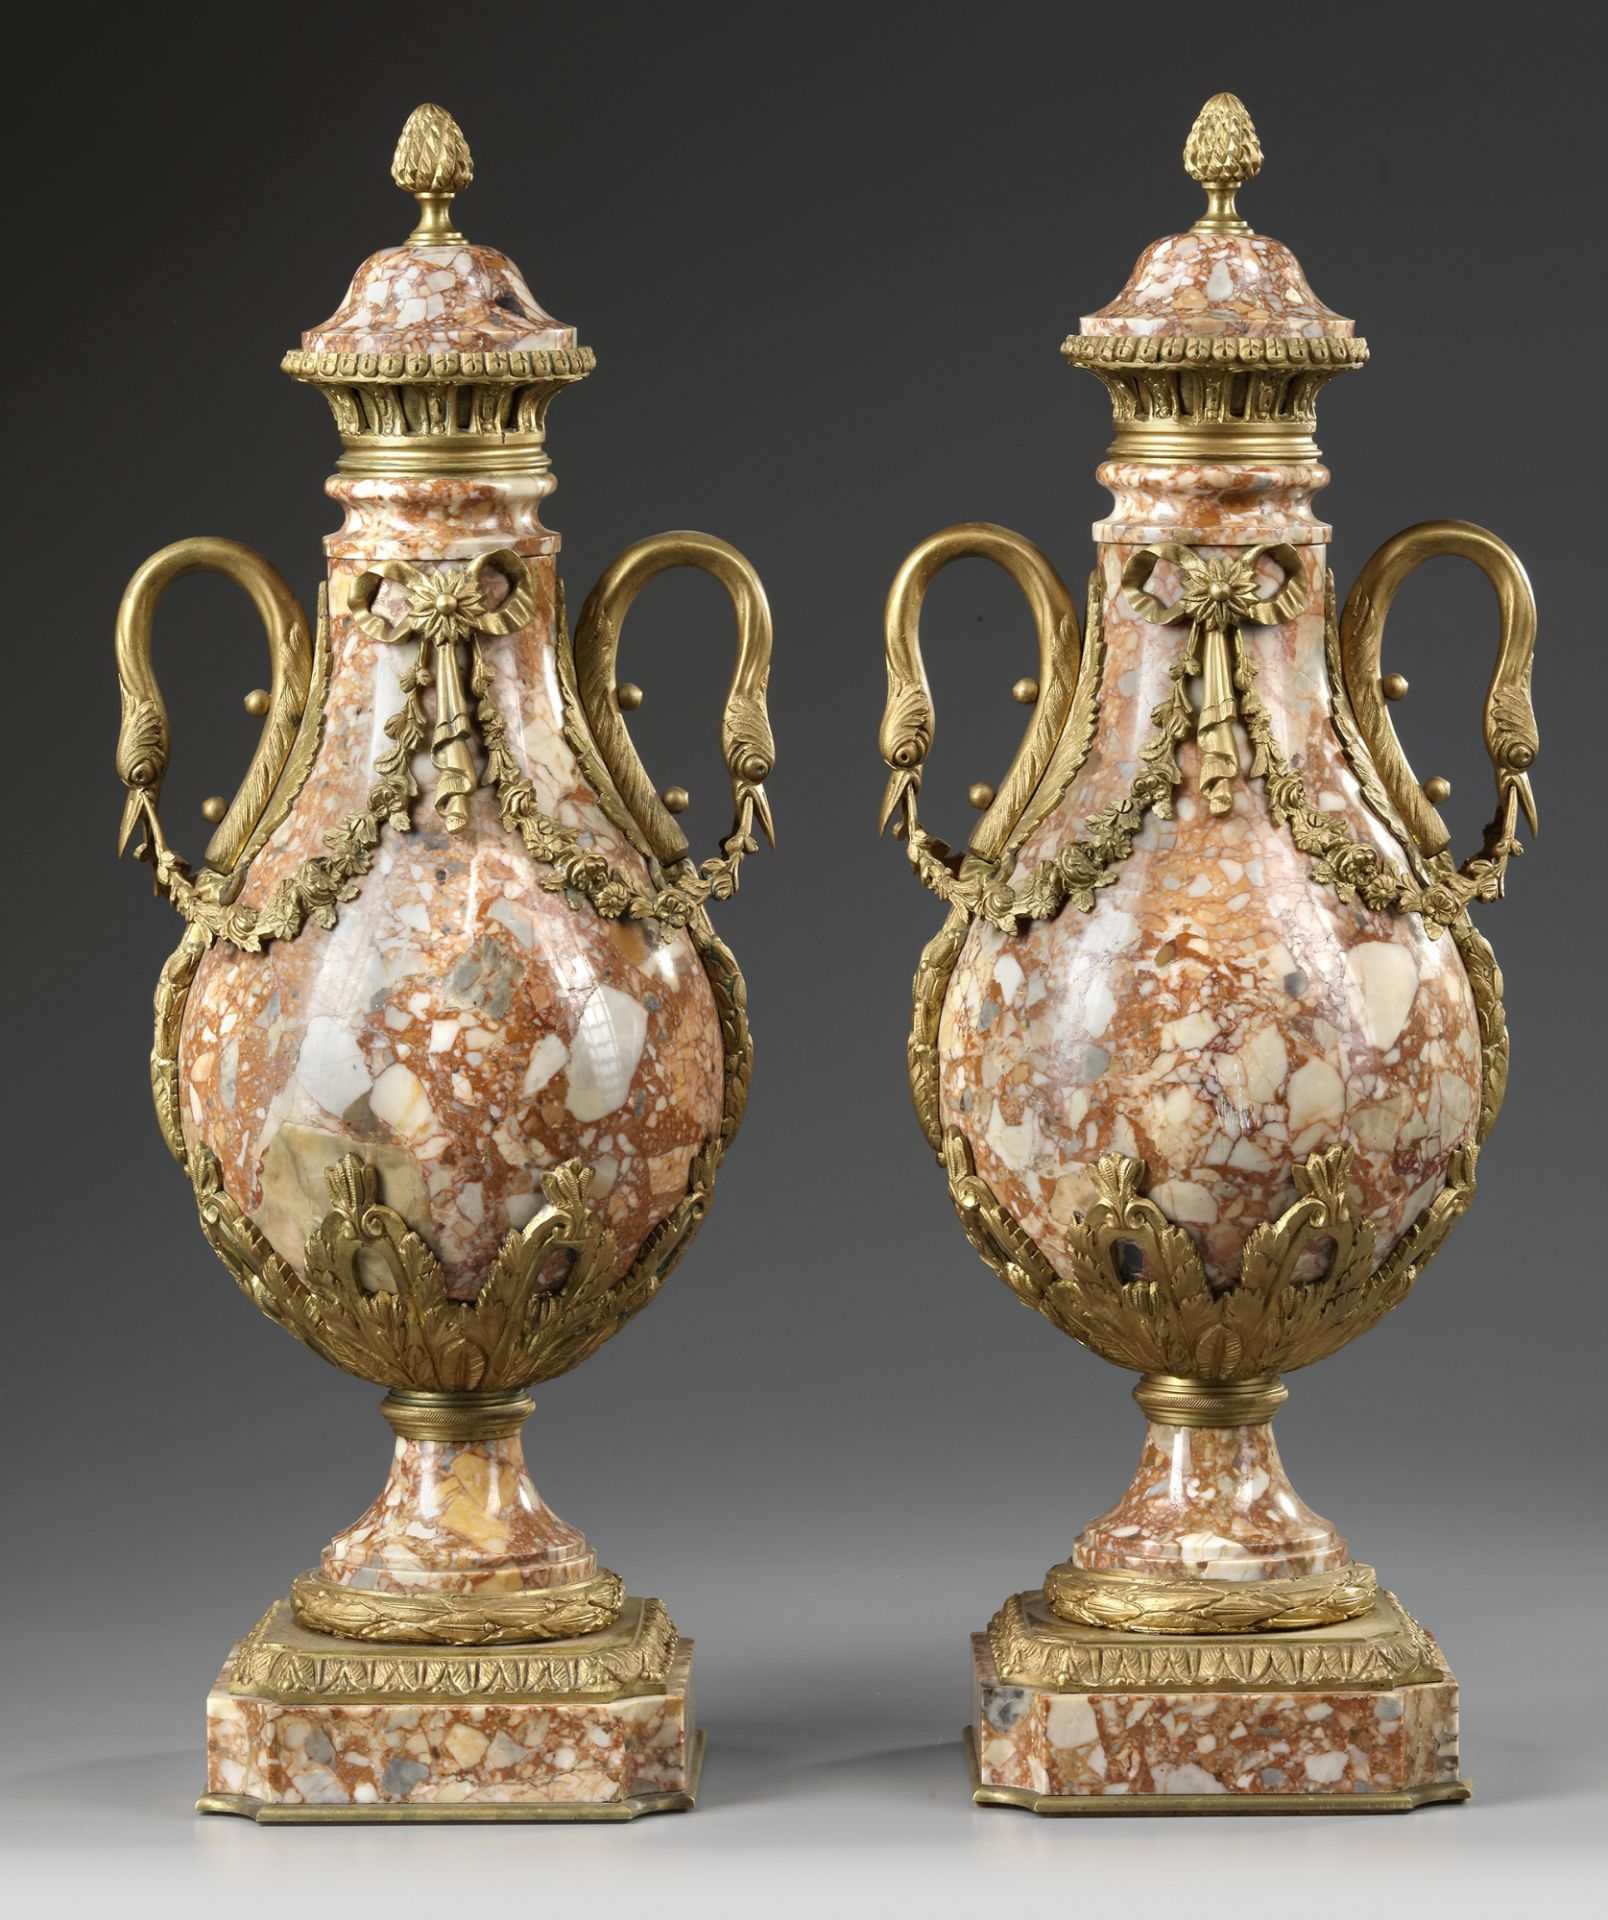 A PAIR OF MARBLE CASSOLETTES, FRANCE 19TH CENTURY - Image 3 of 3